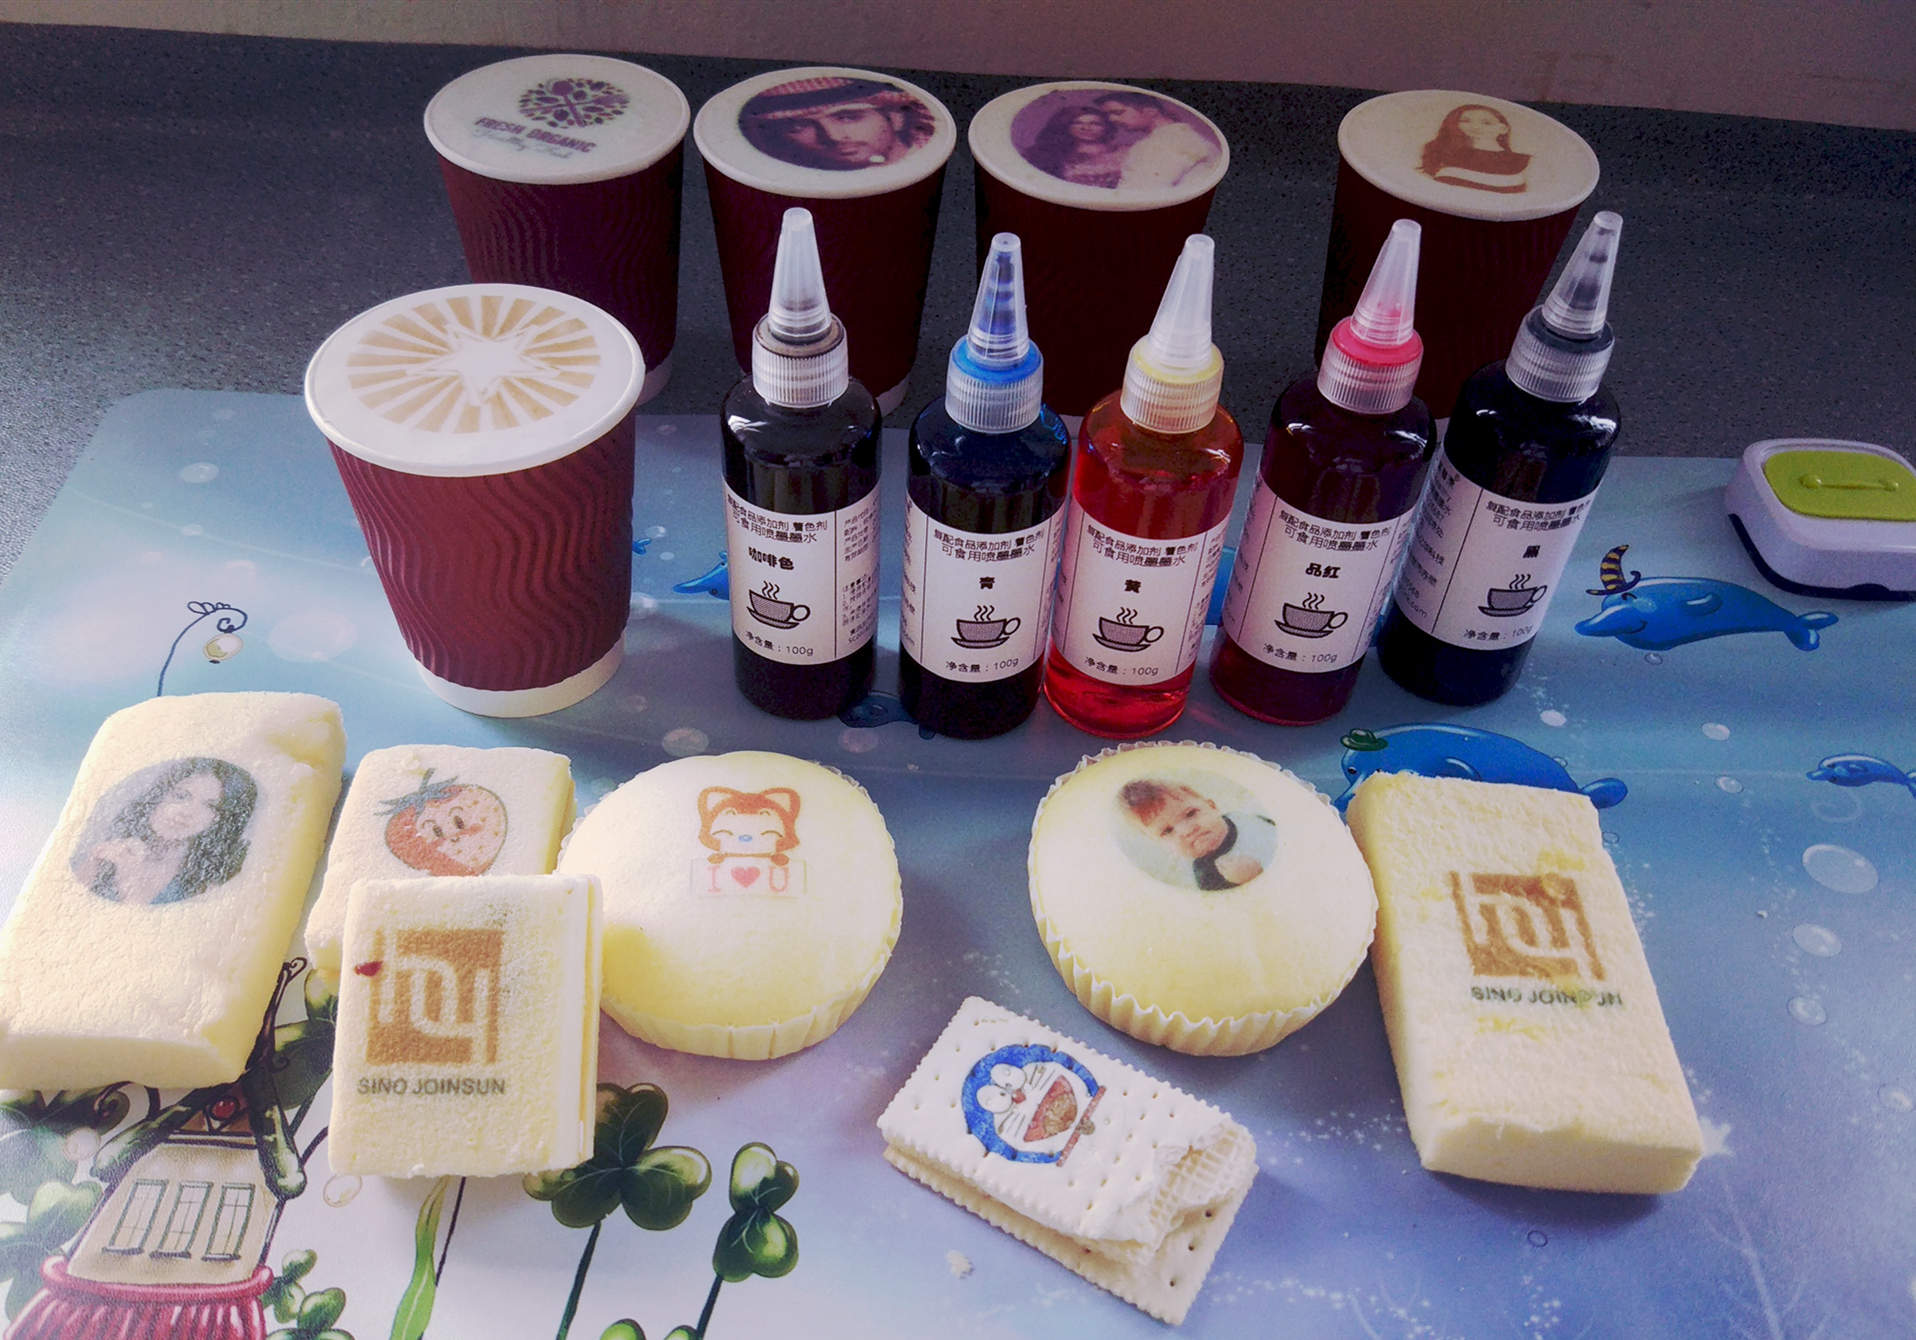 Safe Edible Inkjet Ink for Cake & Coffee Printing